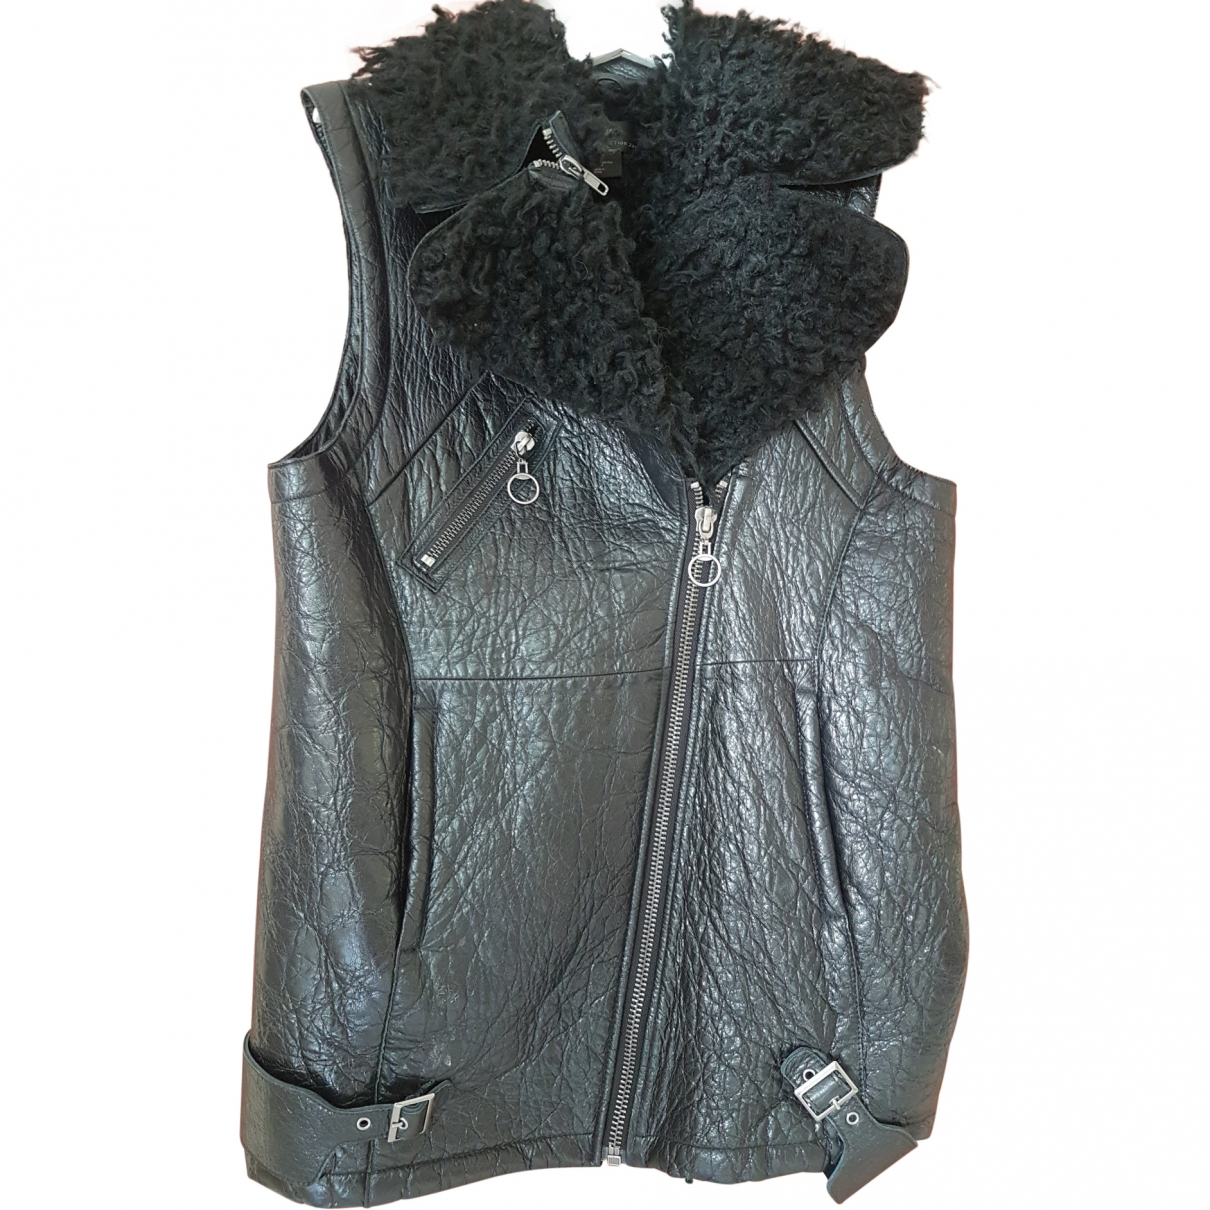 H&m Conscious Exclusive \N Black Leather Leather jacket for Women 36 FR